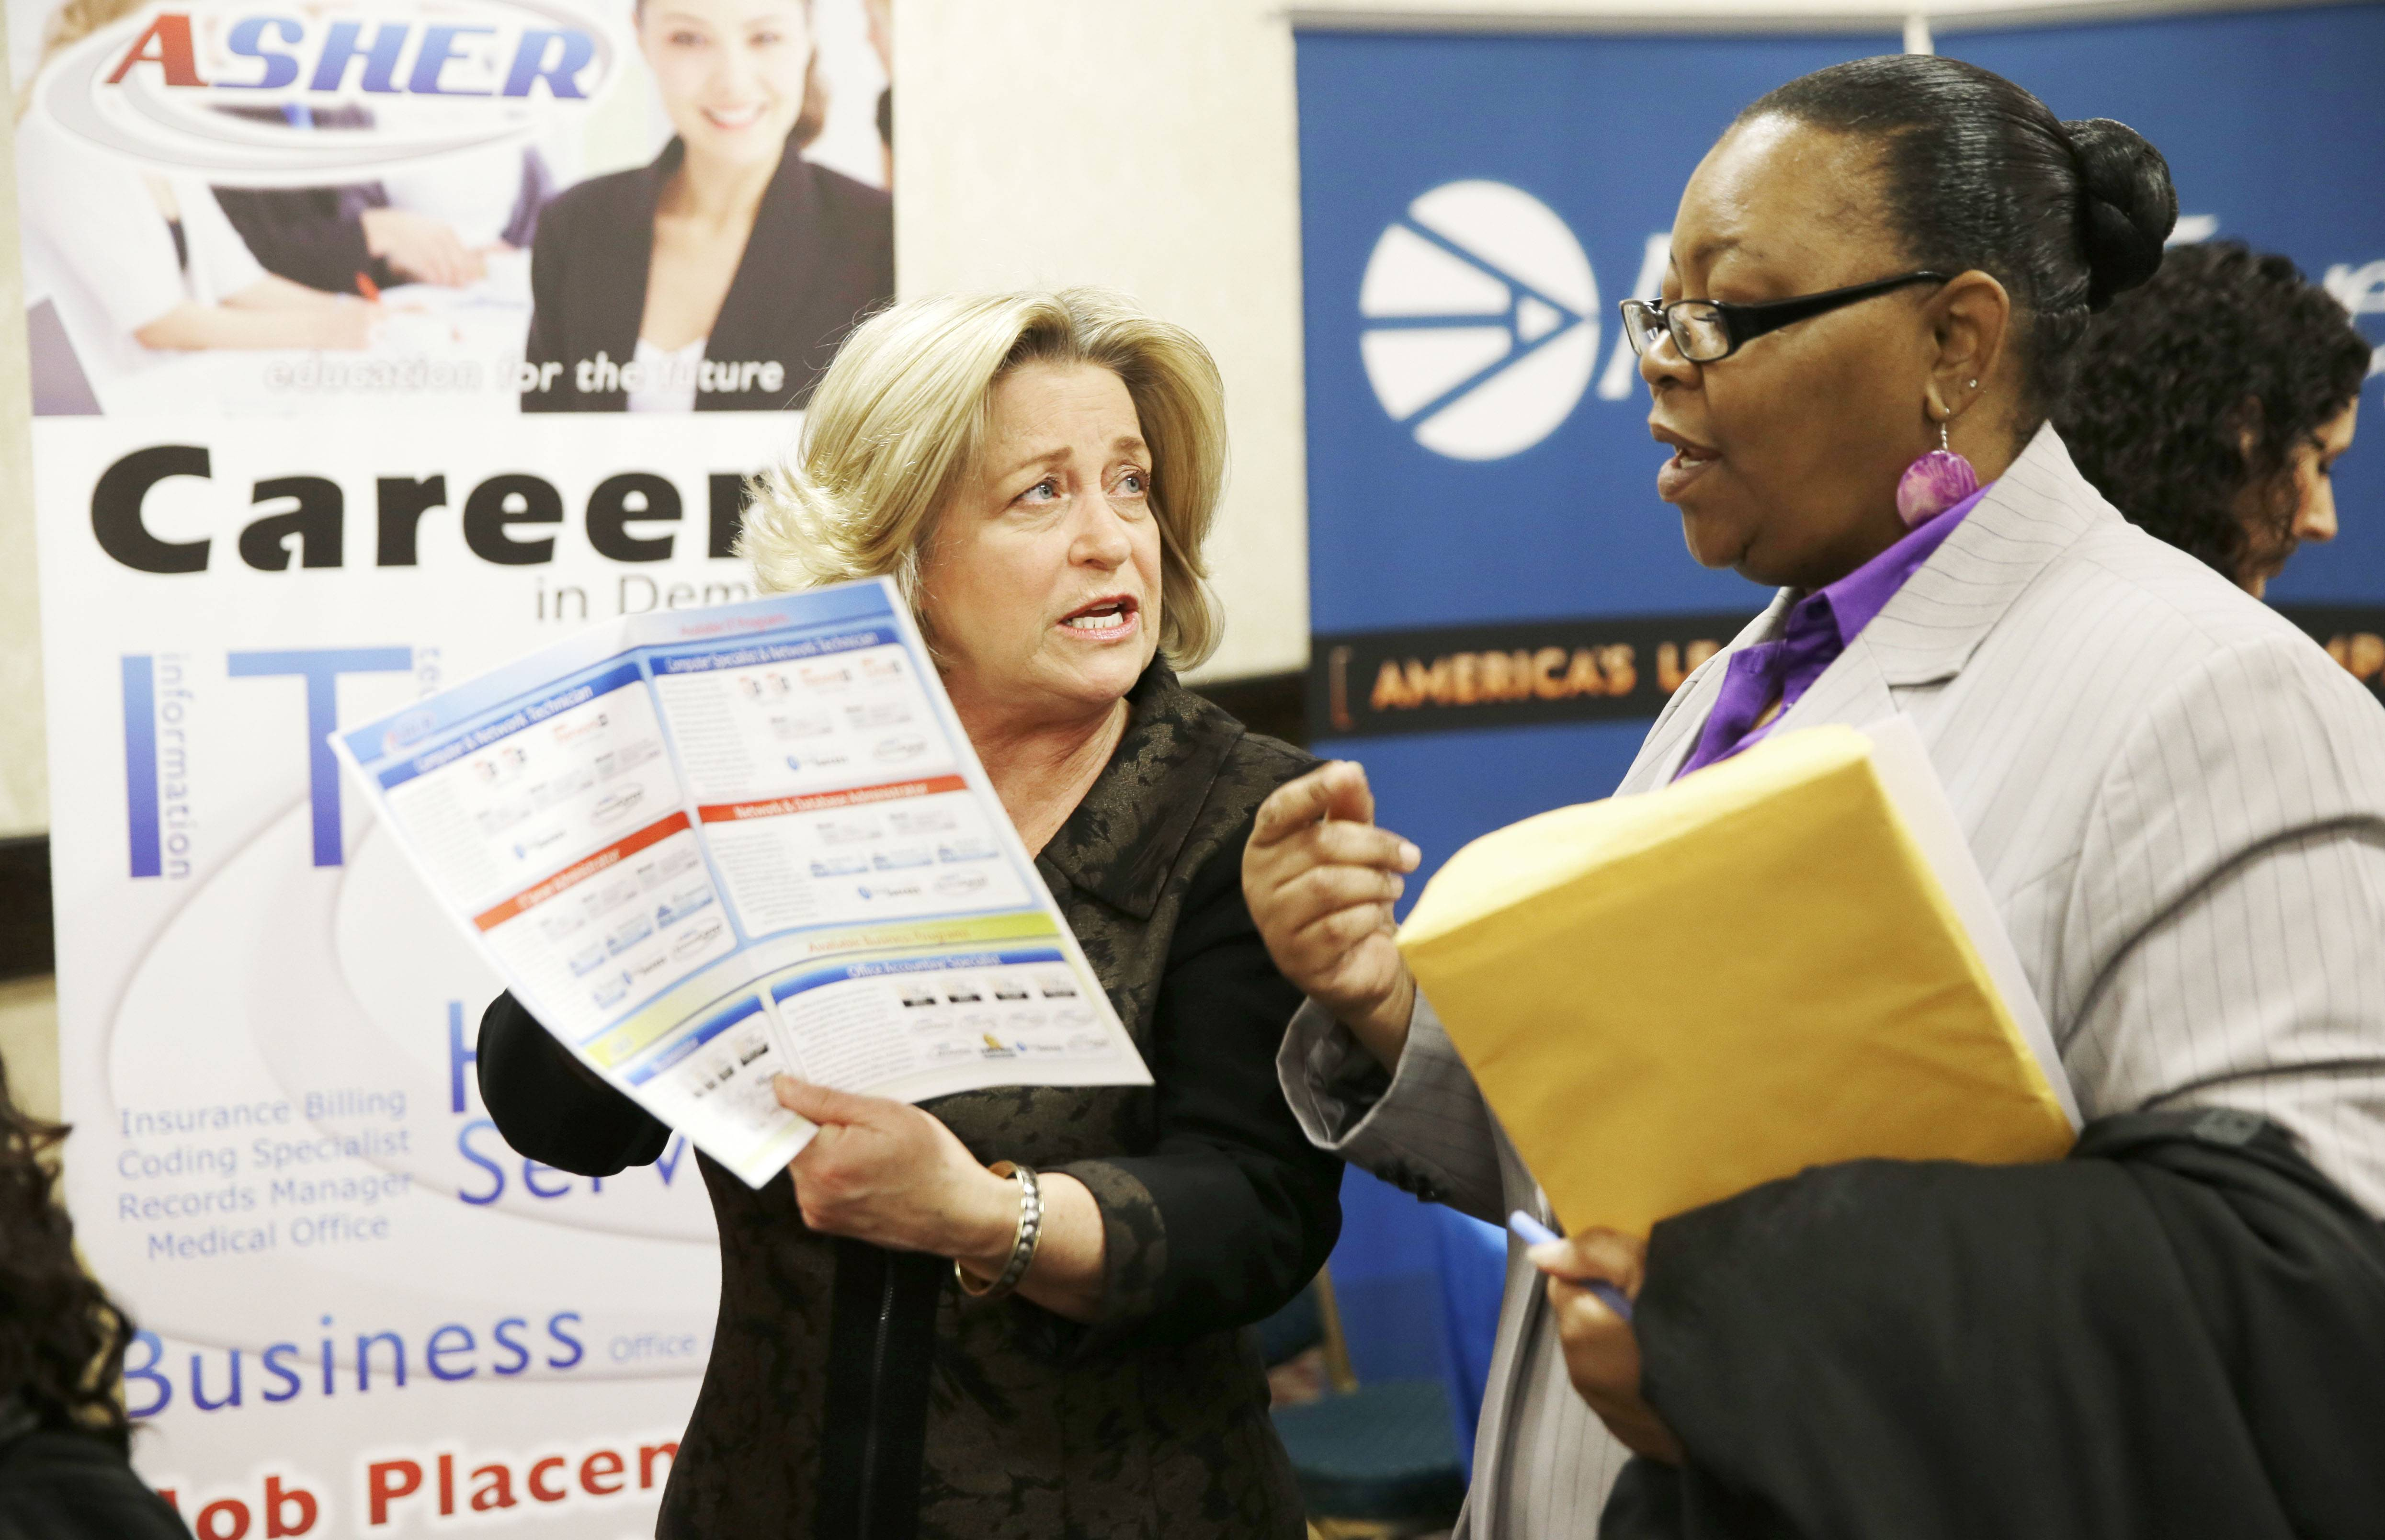 U.S. applications for jobless aid reach 3-month low